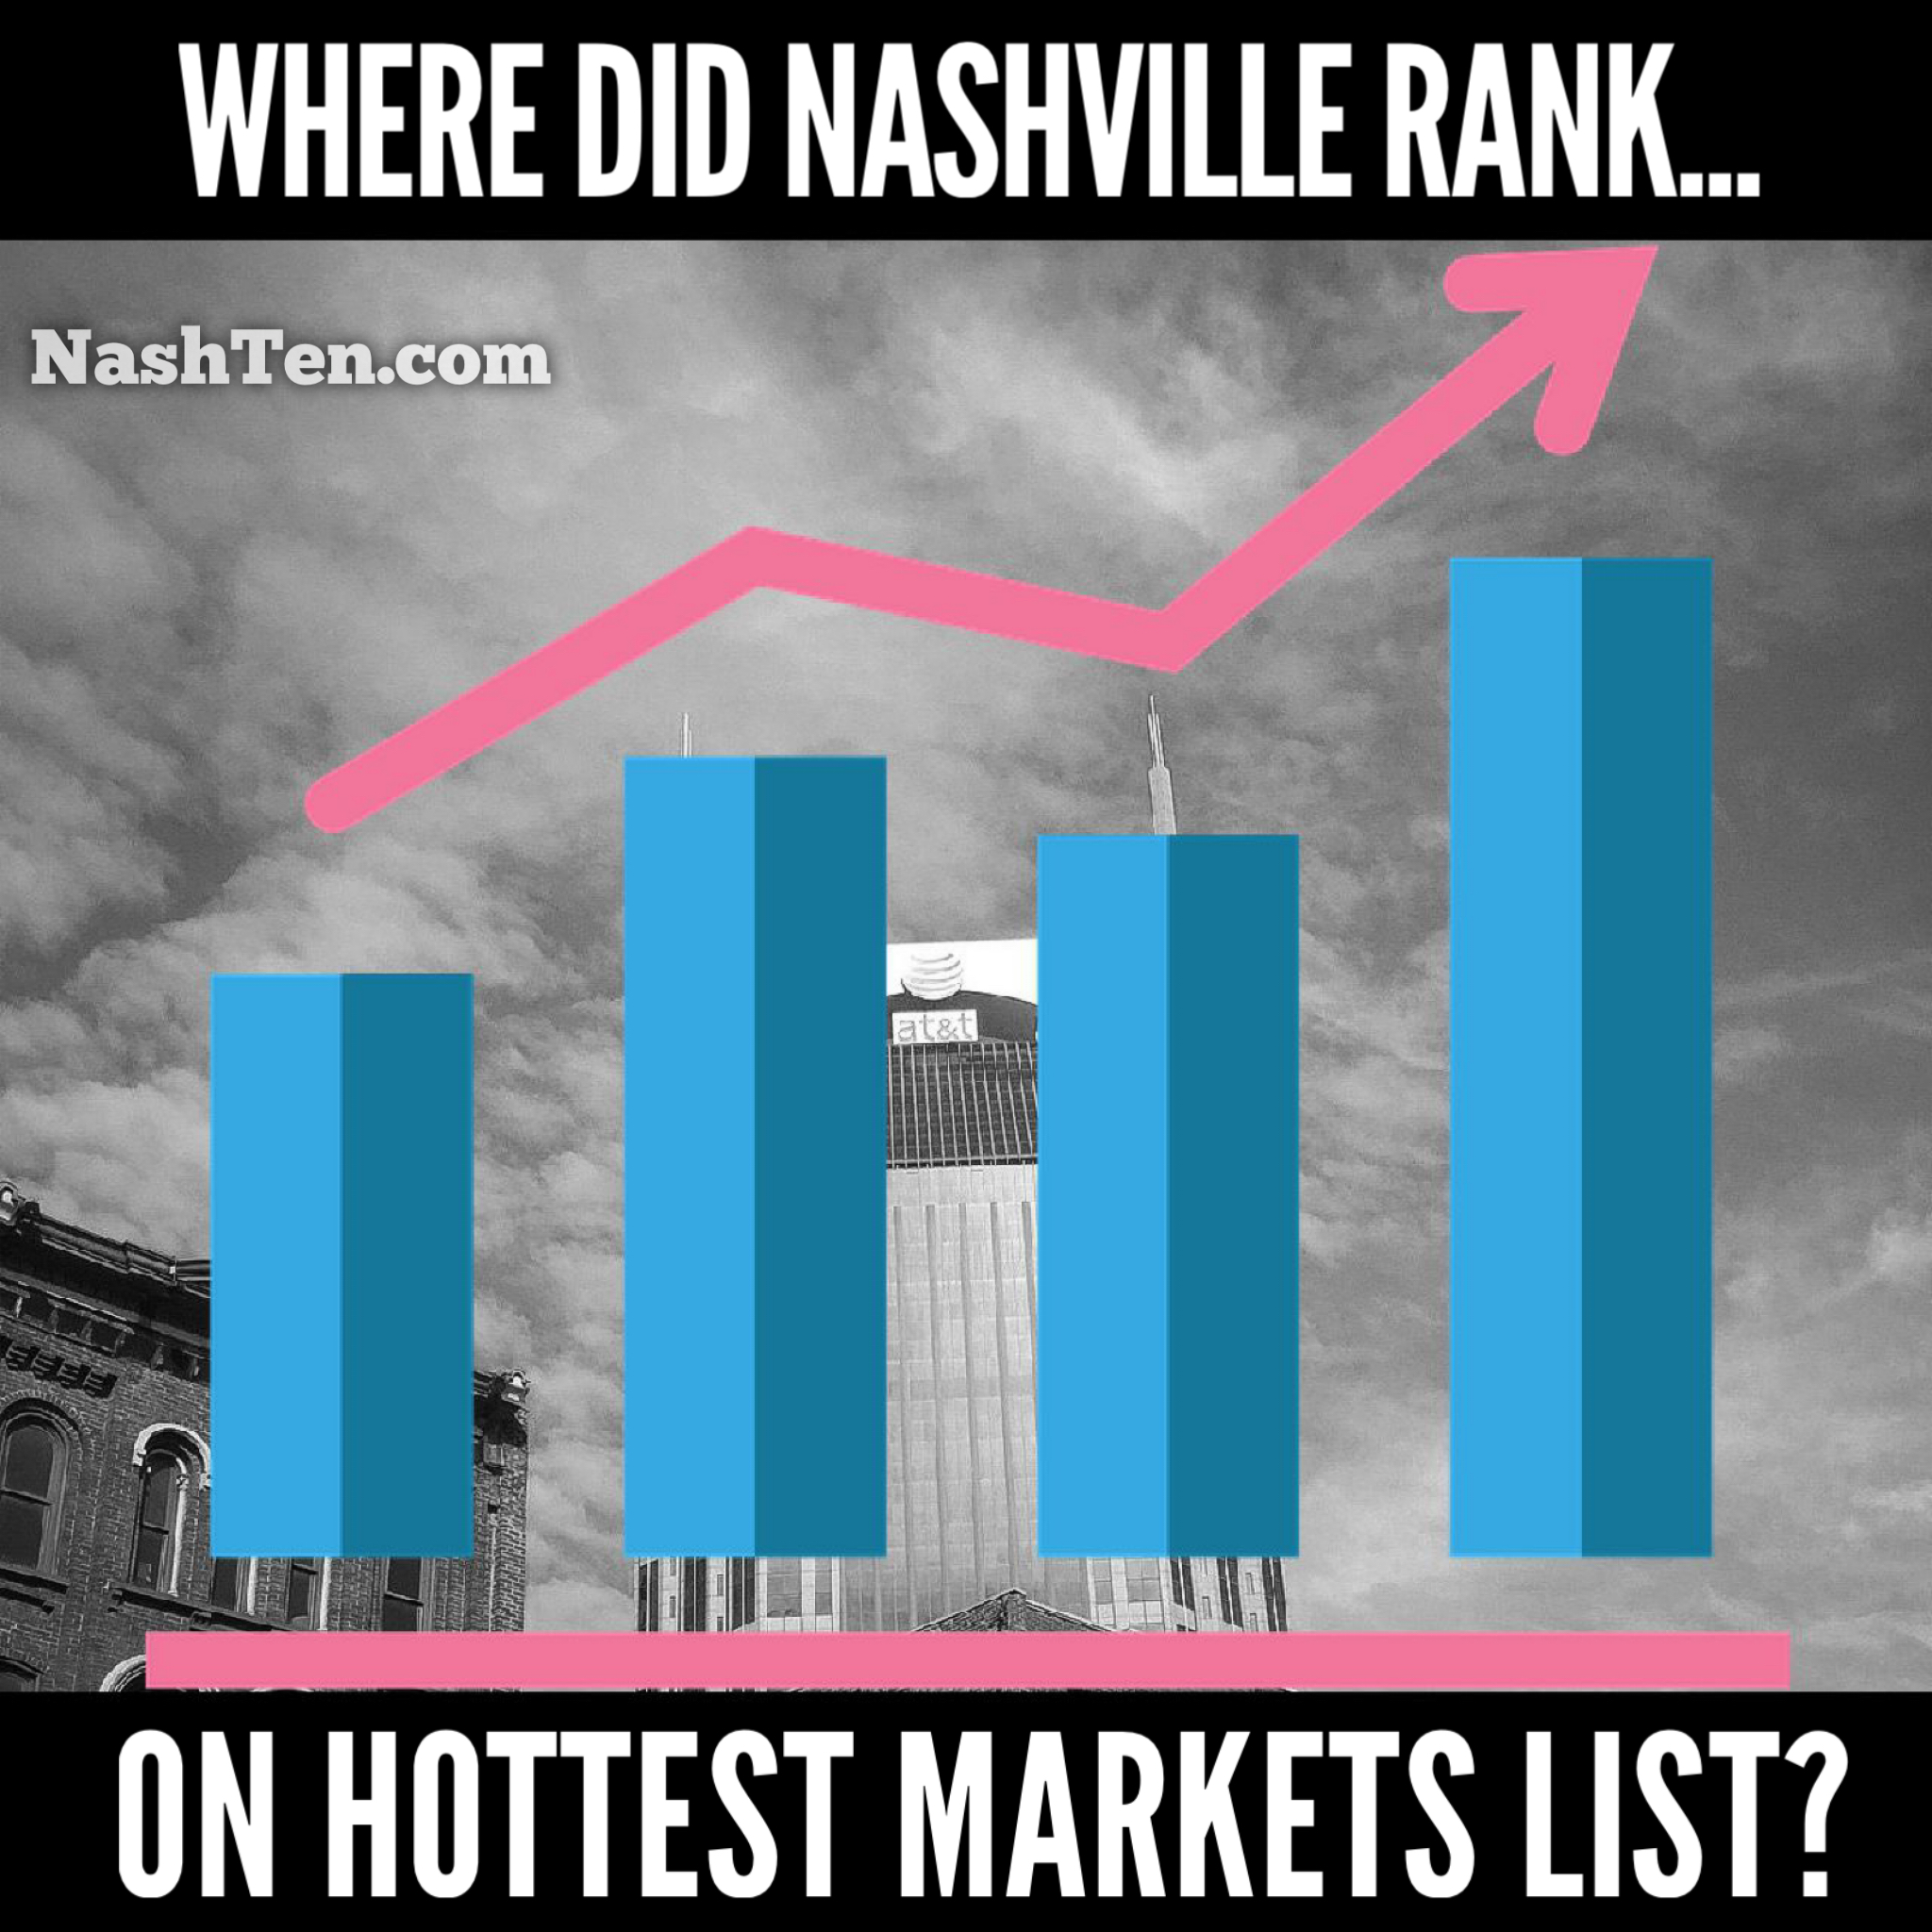 Nashville ranks #8 on the Hottest Markets List